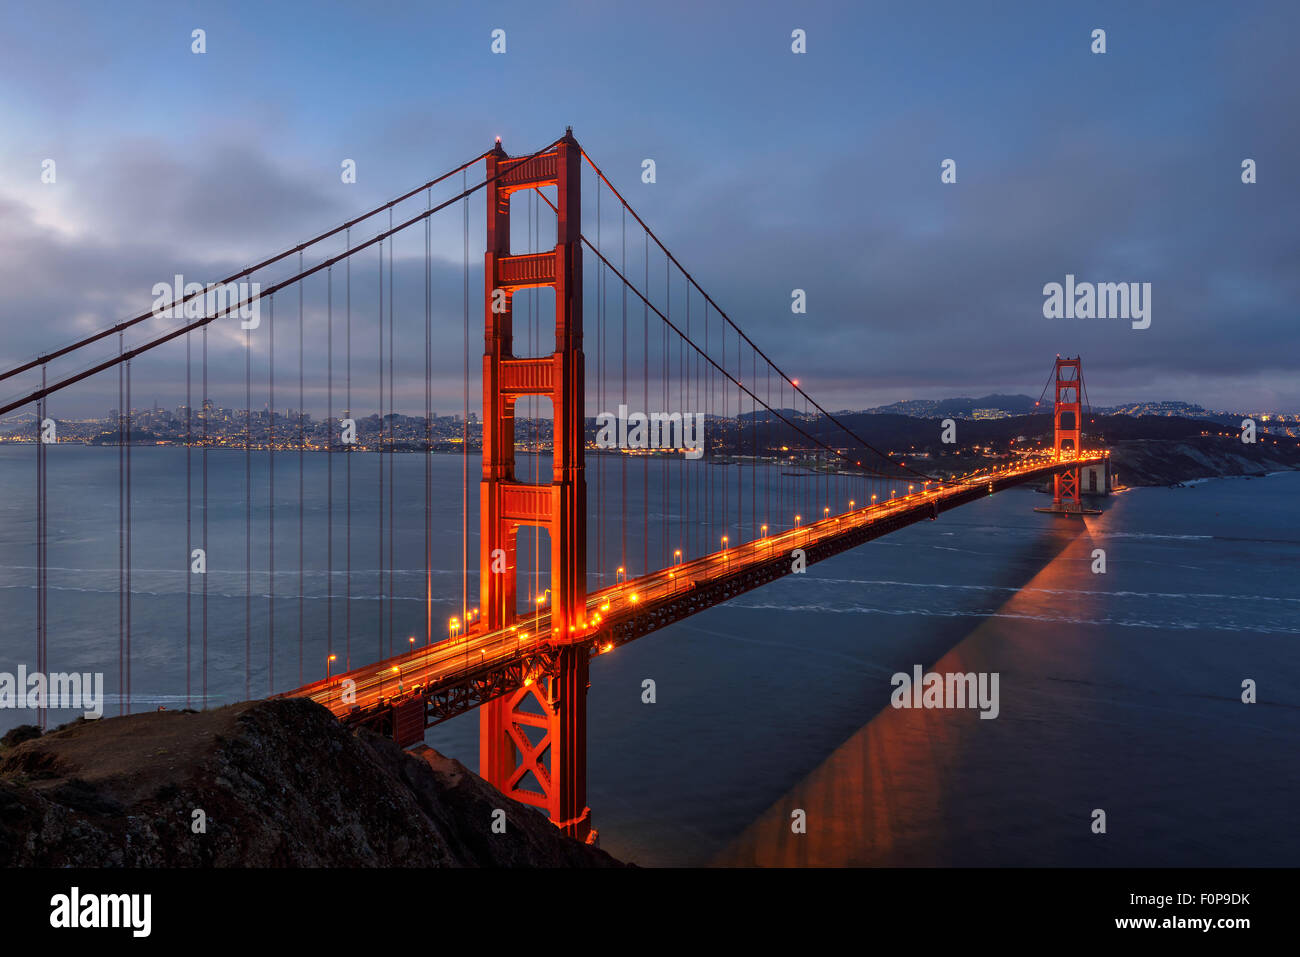 Berühmte Golden Gate Bridge, San Francisco am Morgen, USA Stockbild